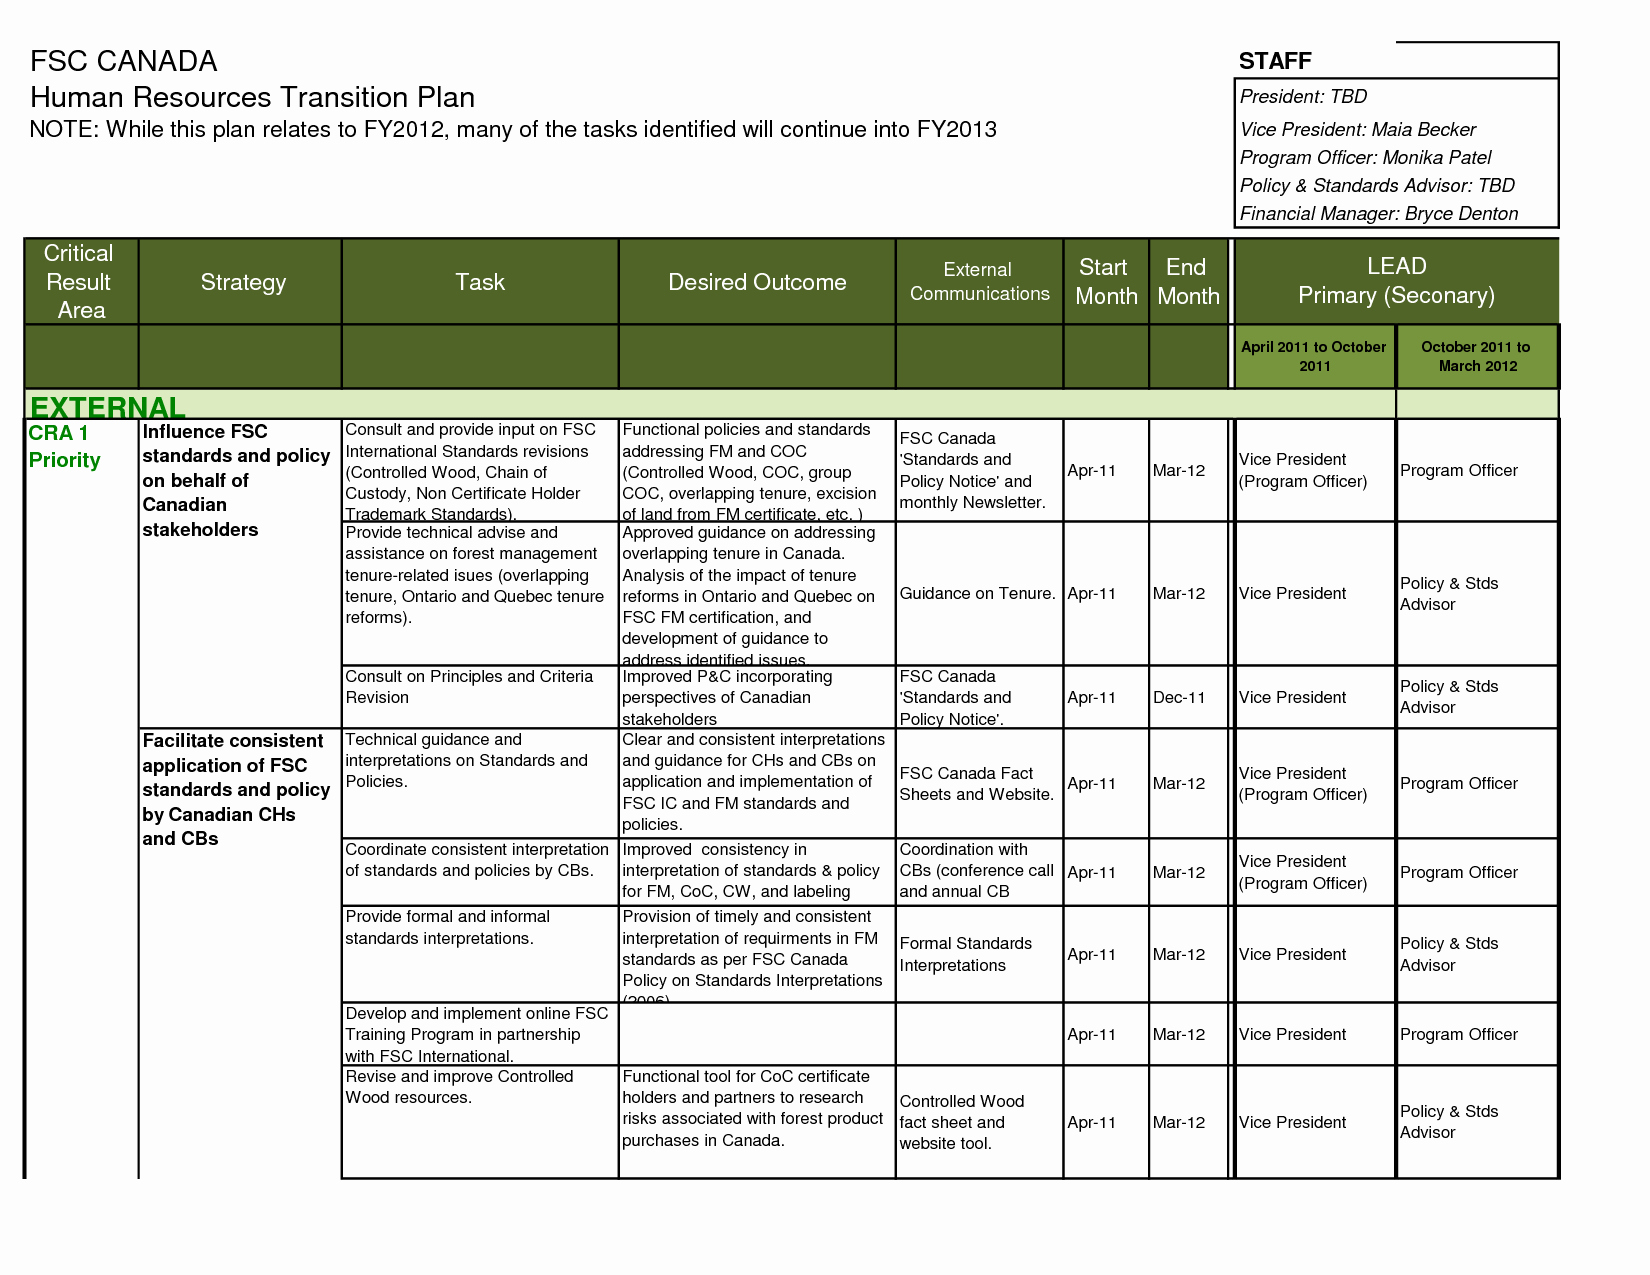 Project Transition Plan Template Excel Awesome Transition Plan Template